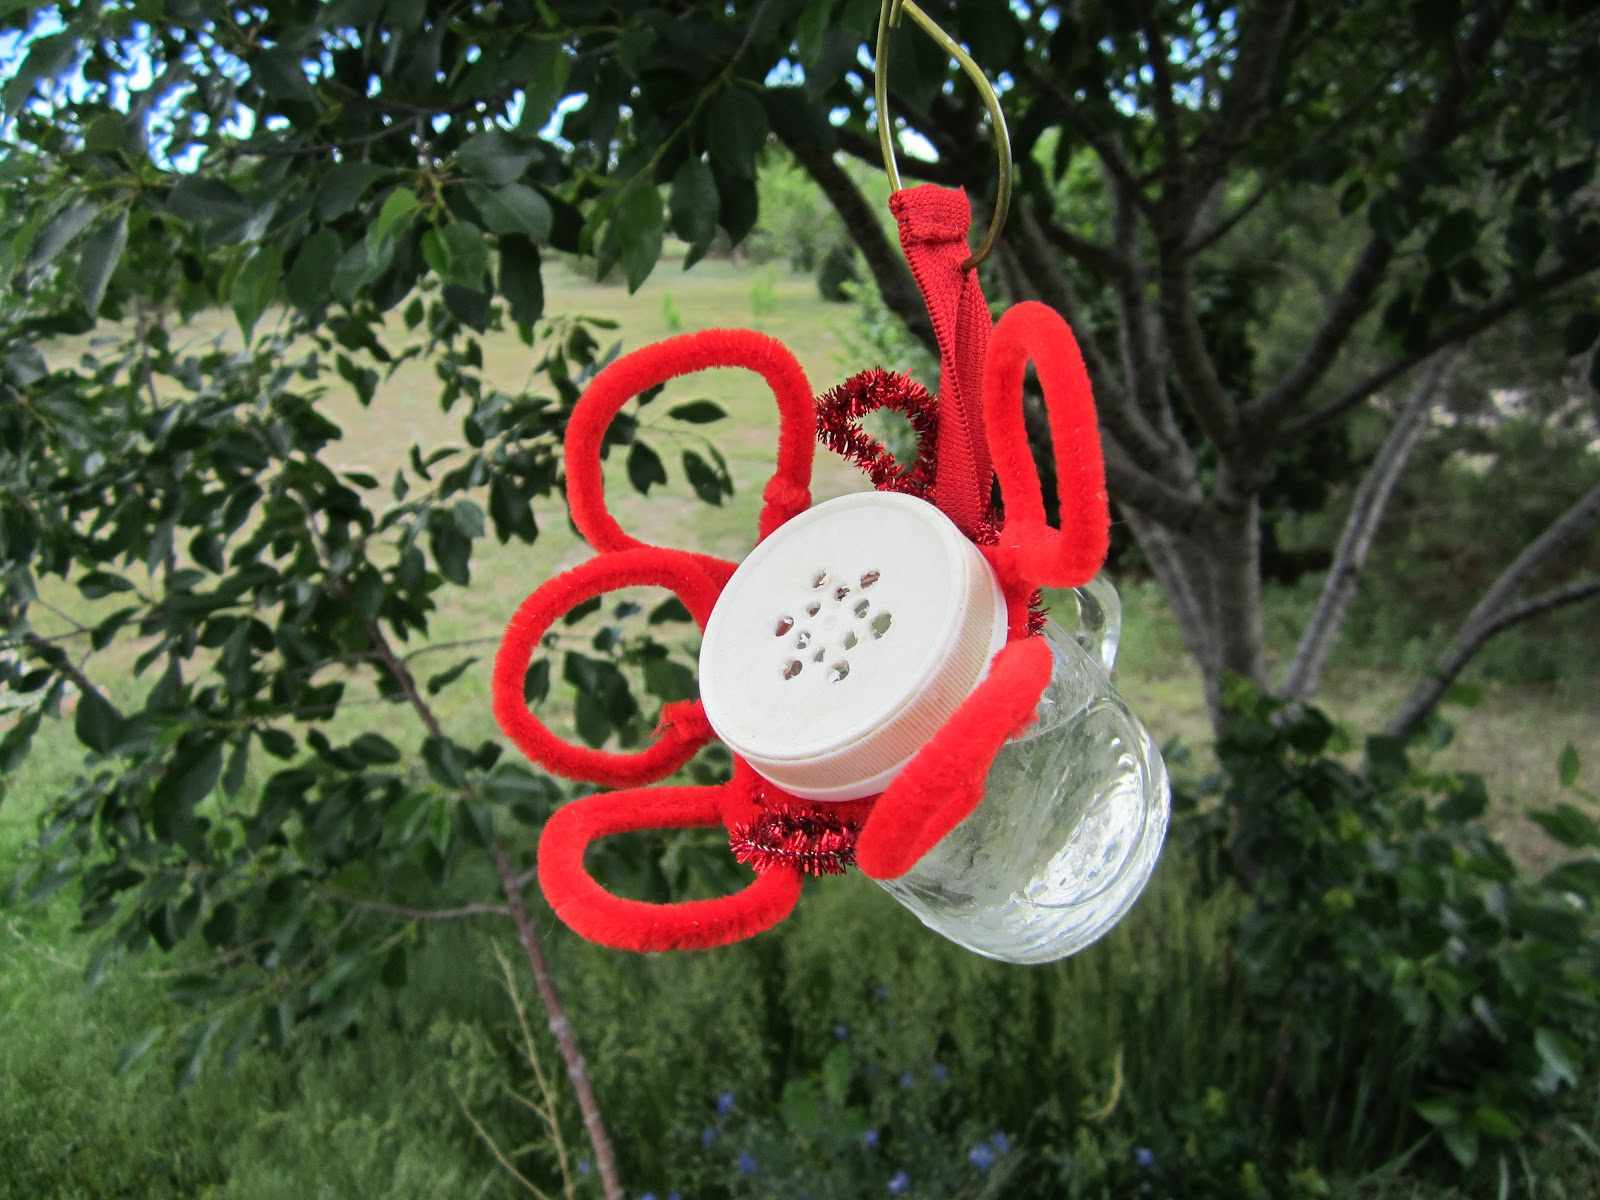 A small hummingbird feeder hanging from a tree